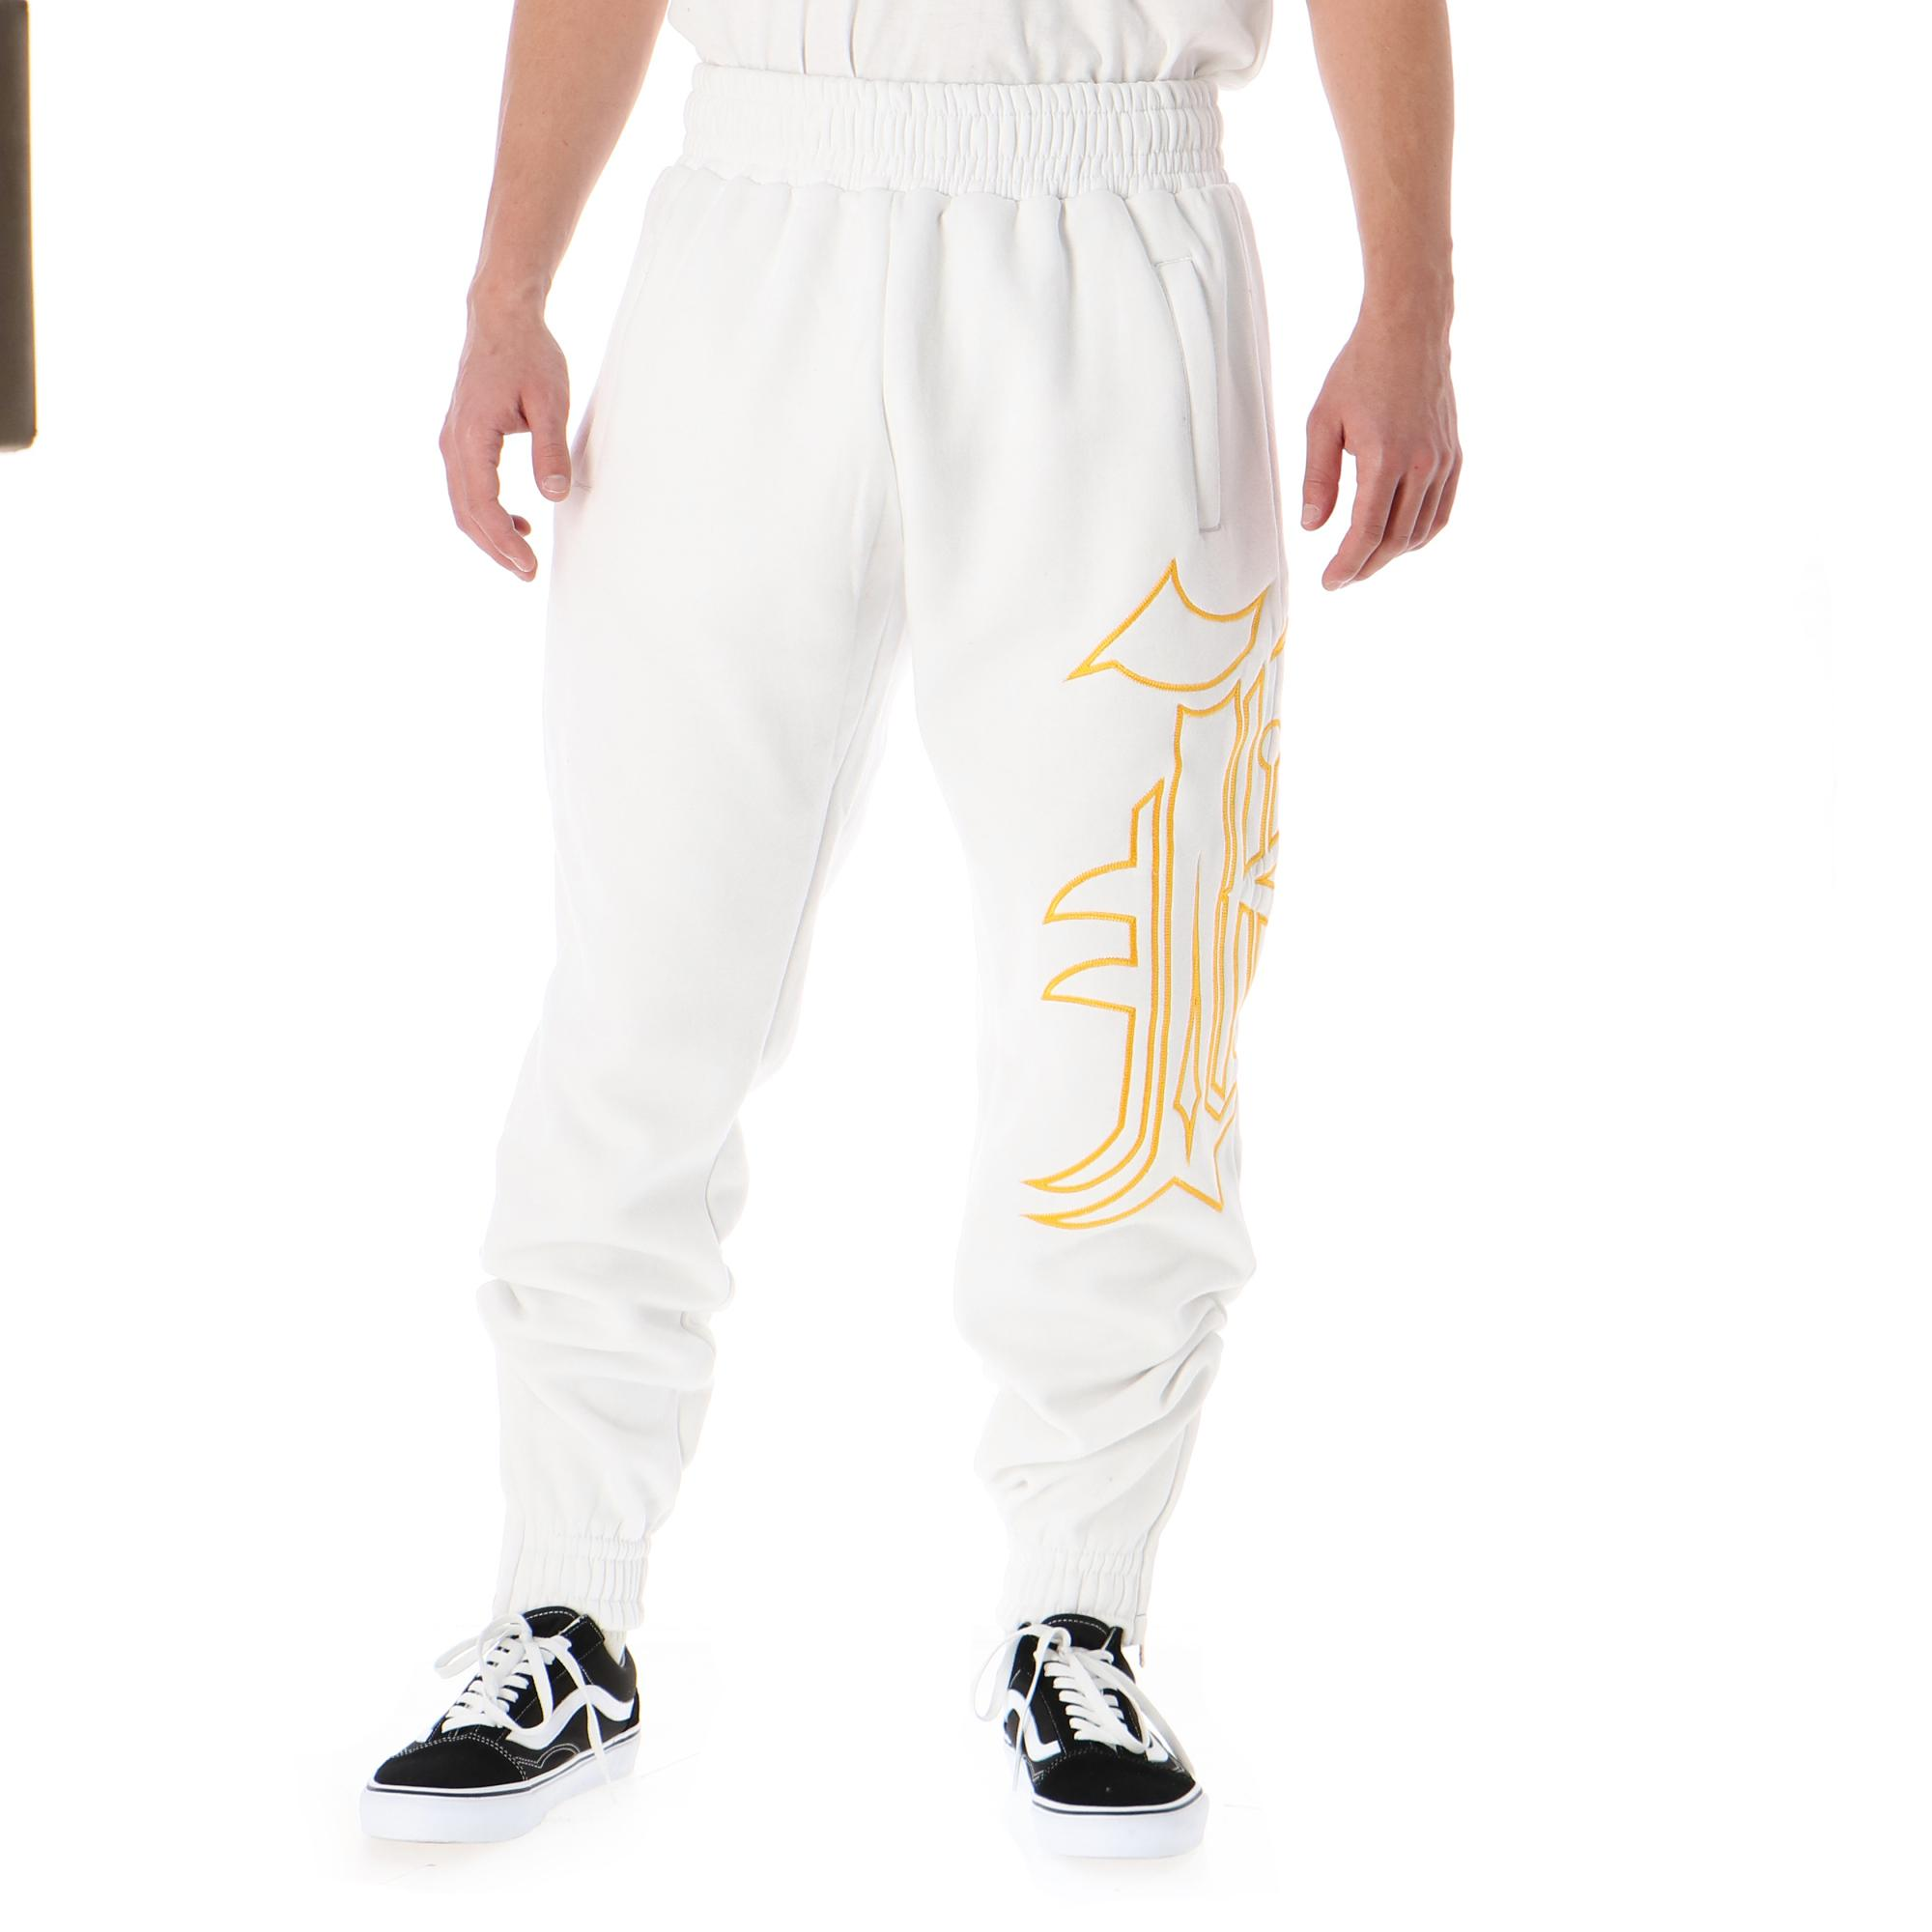 Kali King Bling K Pant White bling